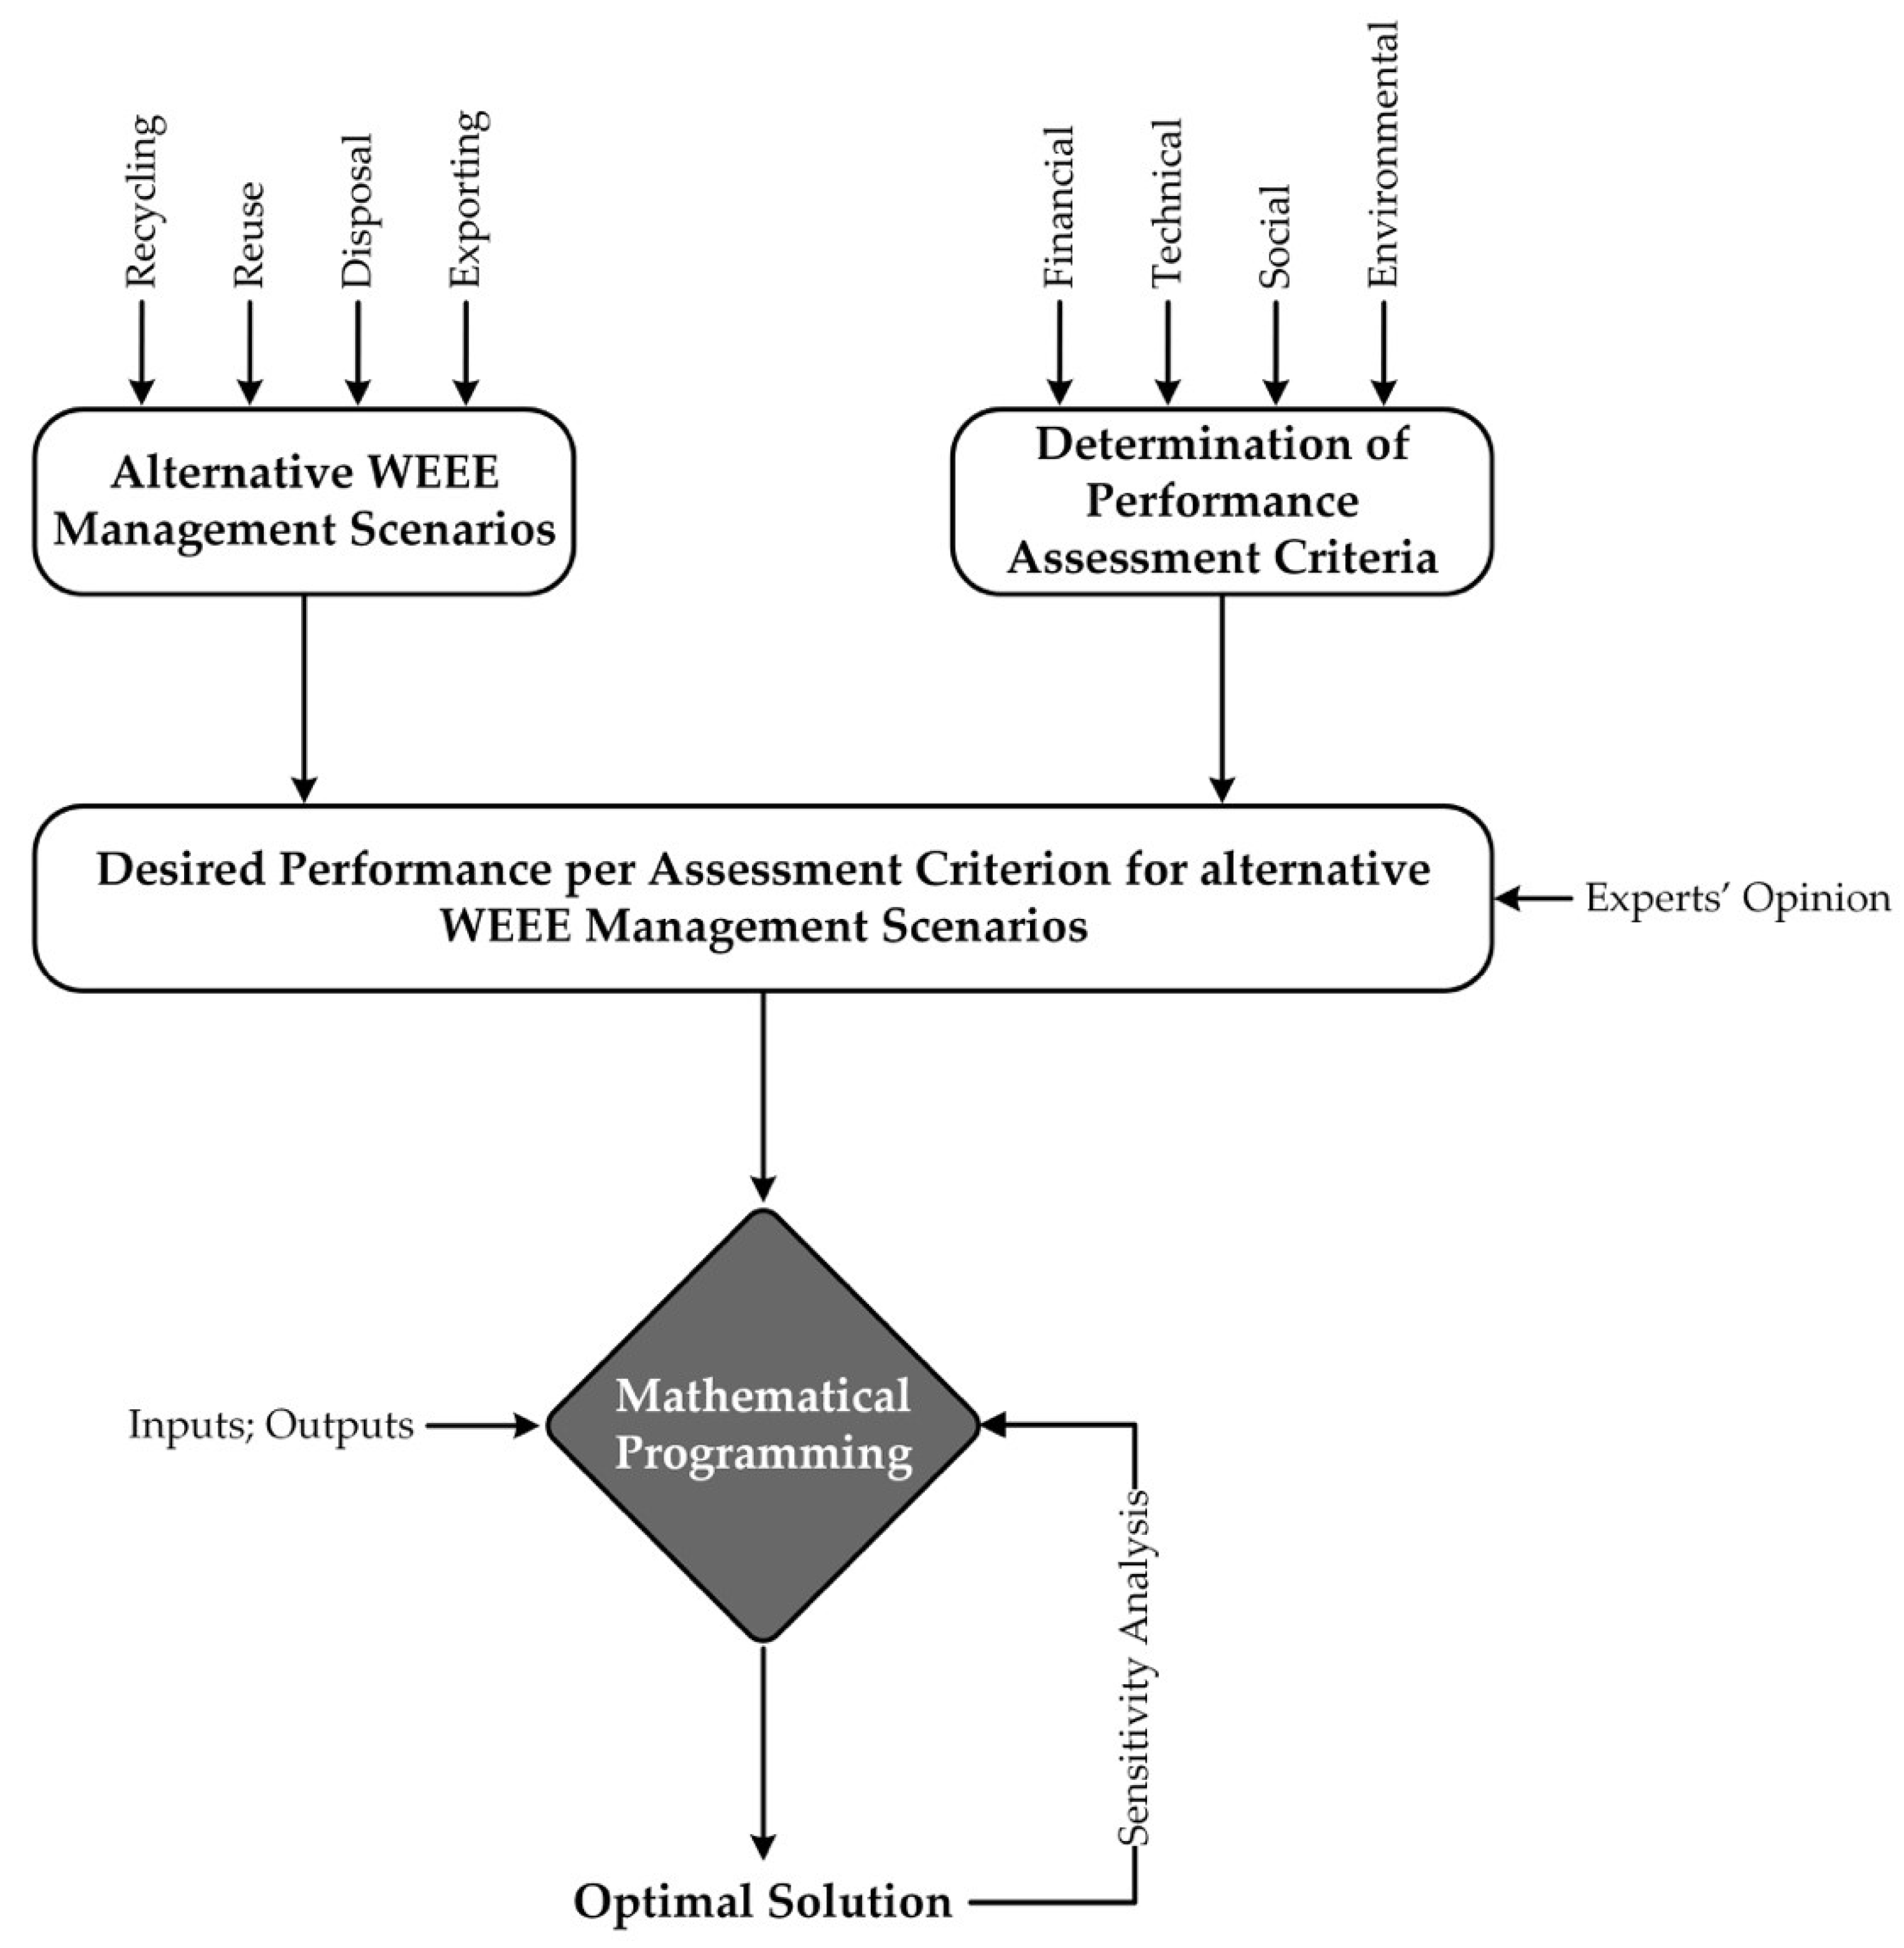 Sustainability | Free Full-Text | Decision Support Model for Evaluating  Alternative Waste Electrical and Electronic Equipment Management Schemes—A  Case Study | HTML